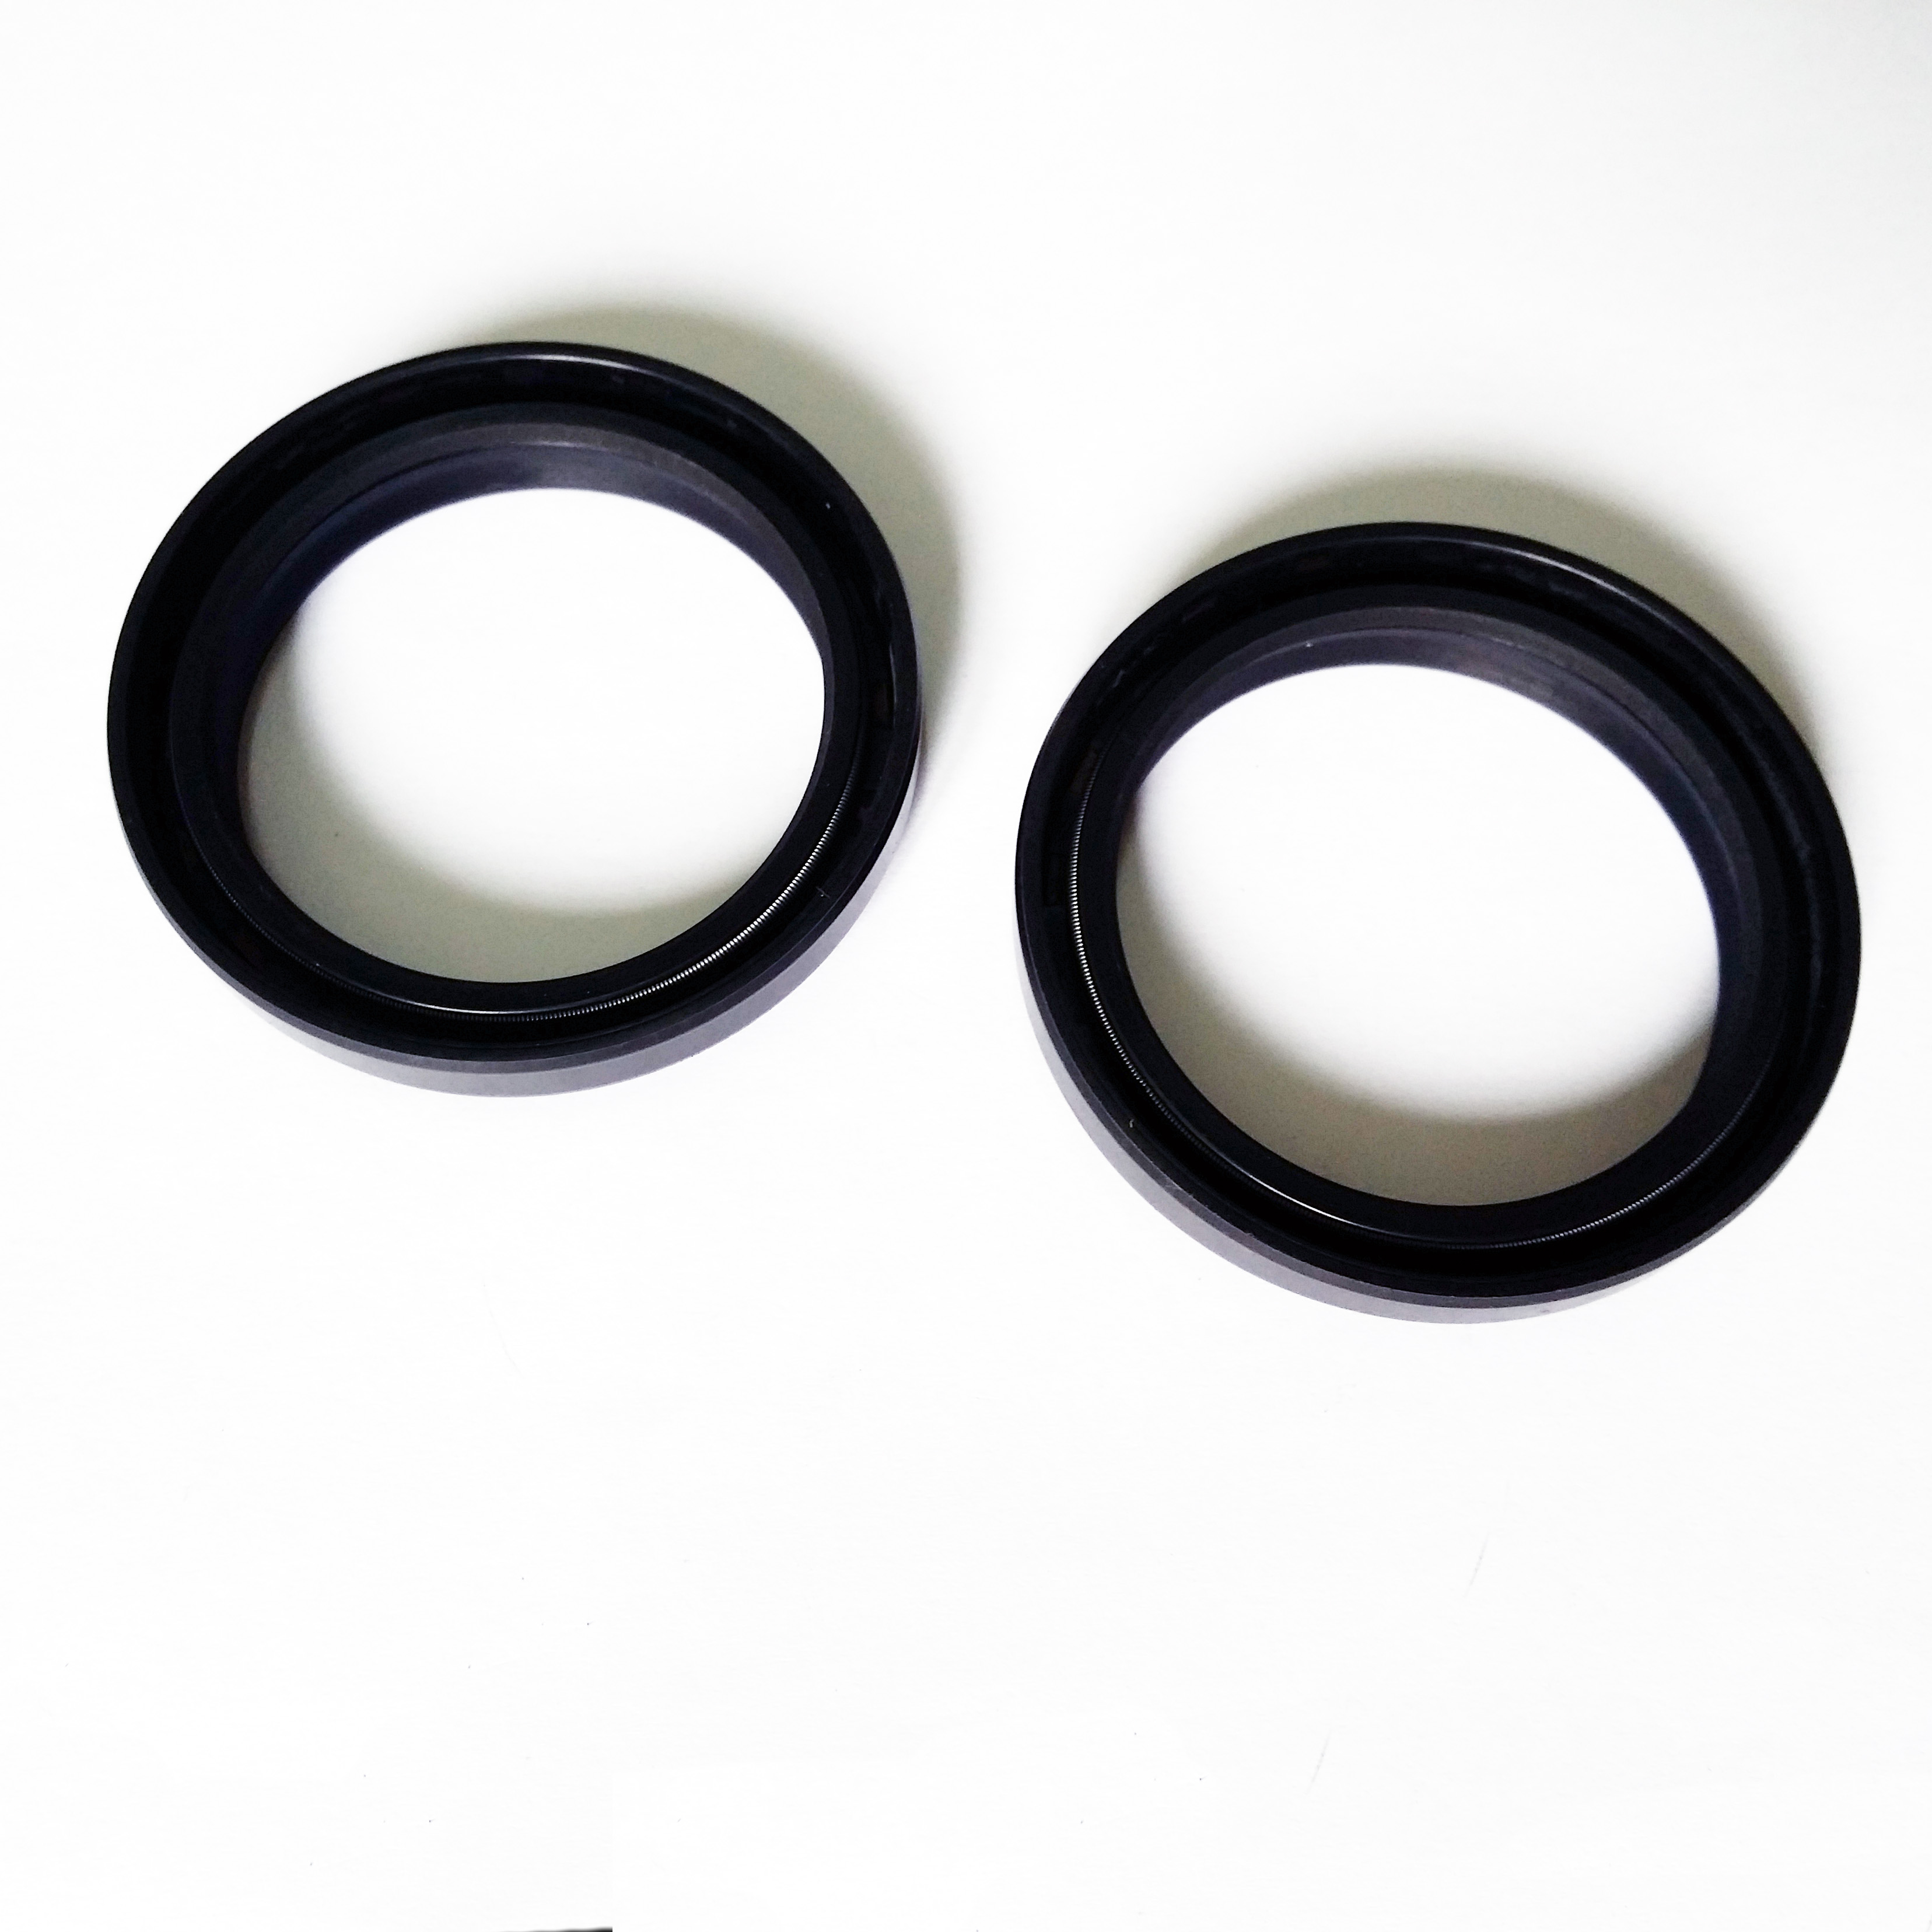 K-Tech Yamaha V-Max 1996-1998 NOK Front Fork Oil Seals 43x55x9.5mm